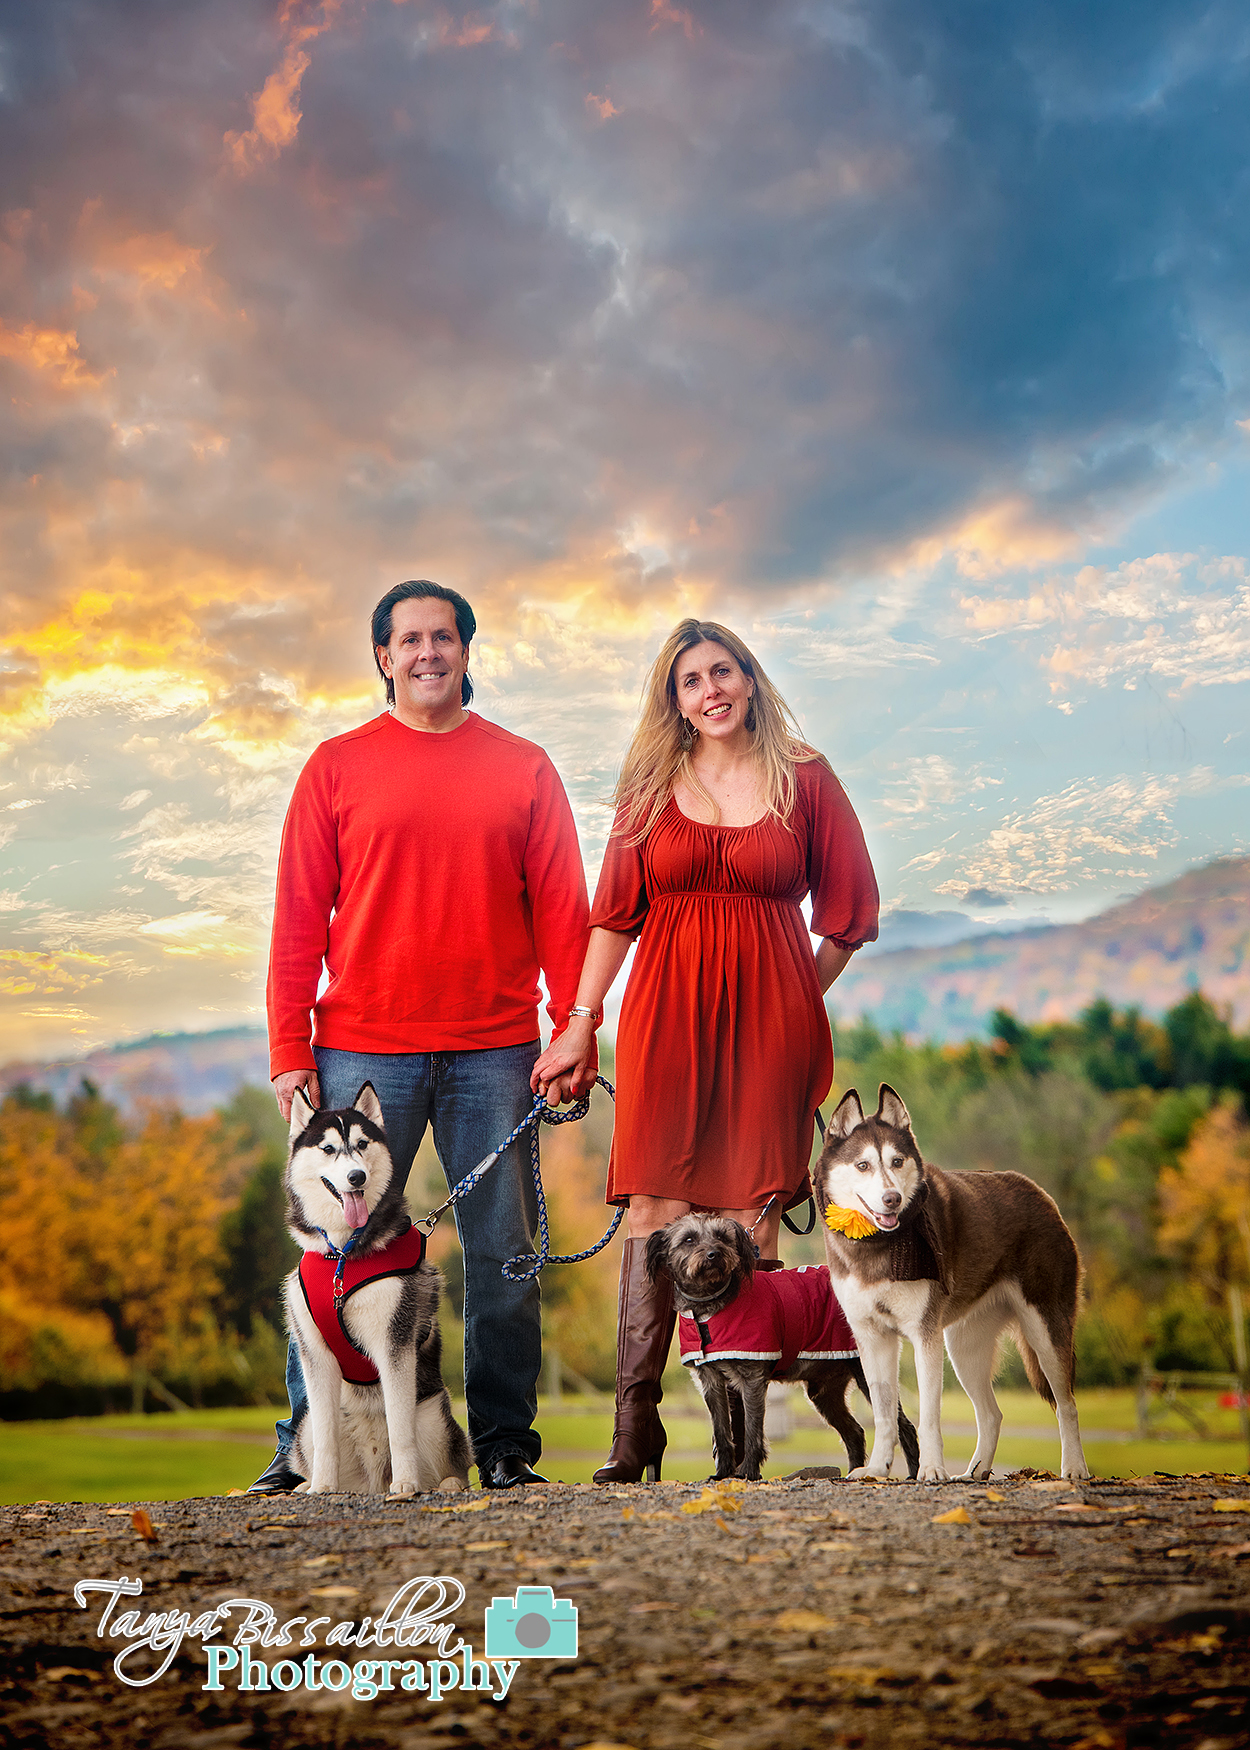 Beautiful sunset with a couple and their dogs